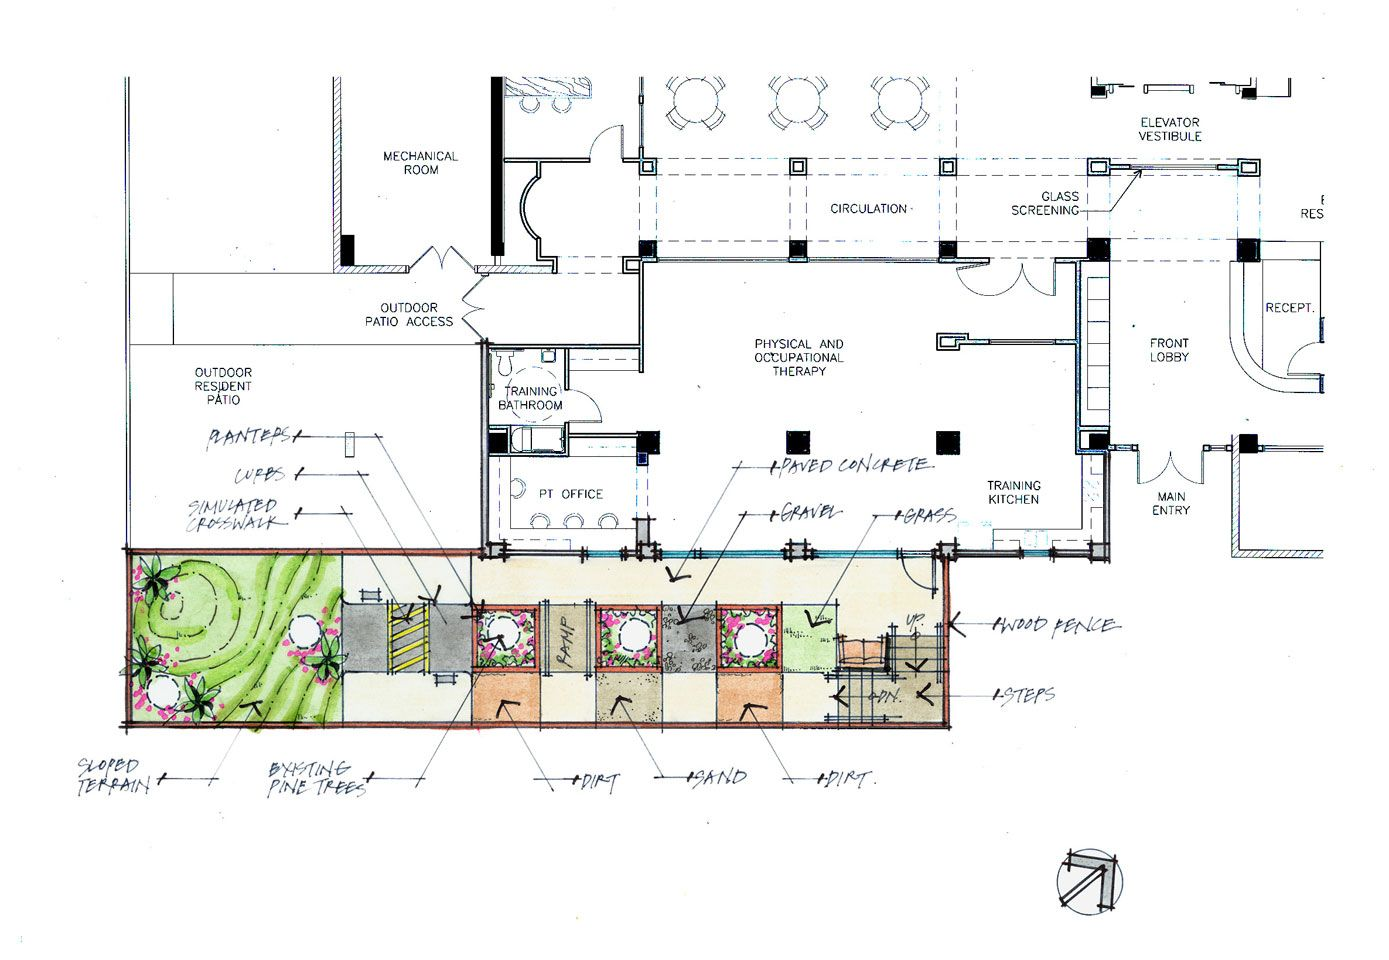 occupational therapy gym floor plans Google Search